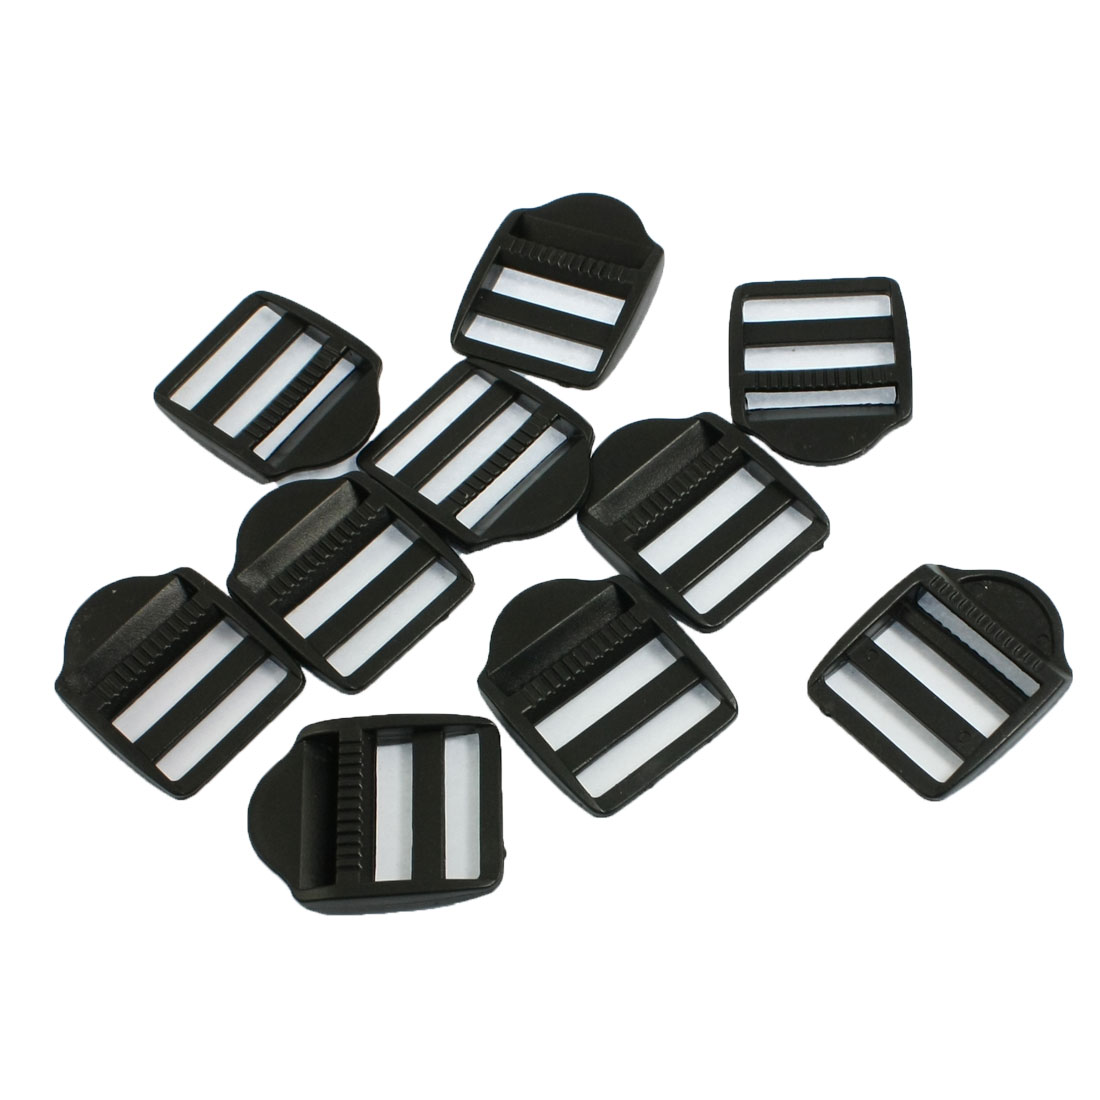 "10 Pcs Plastic Replaceable Luggage Bag Side Buckles for 1"" Width"